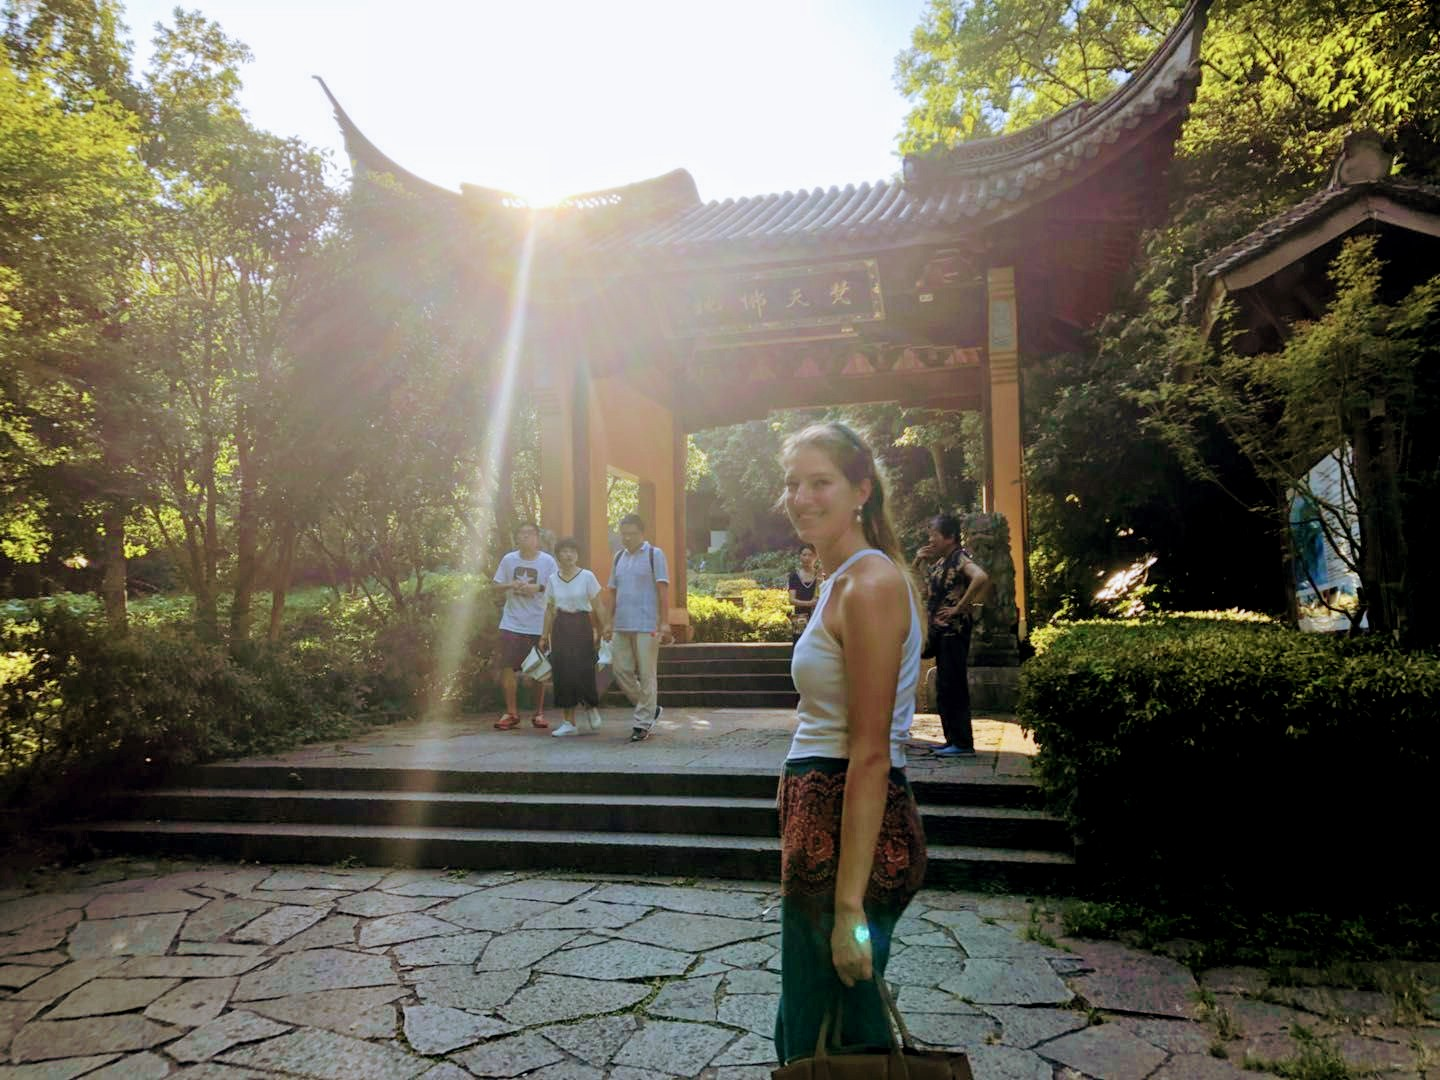 TEFL trained English teacher embarks on adventure to teach in China